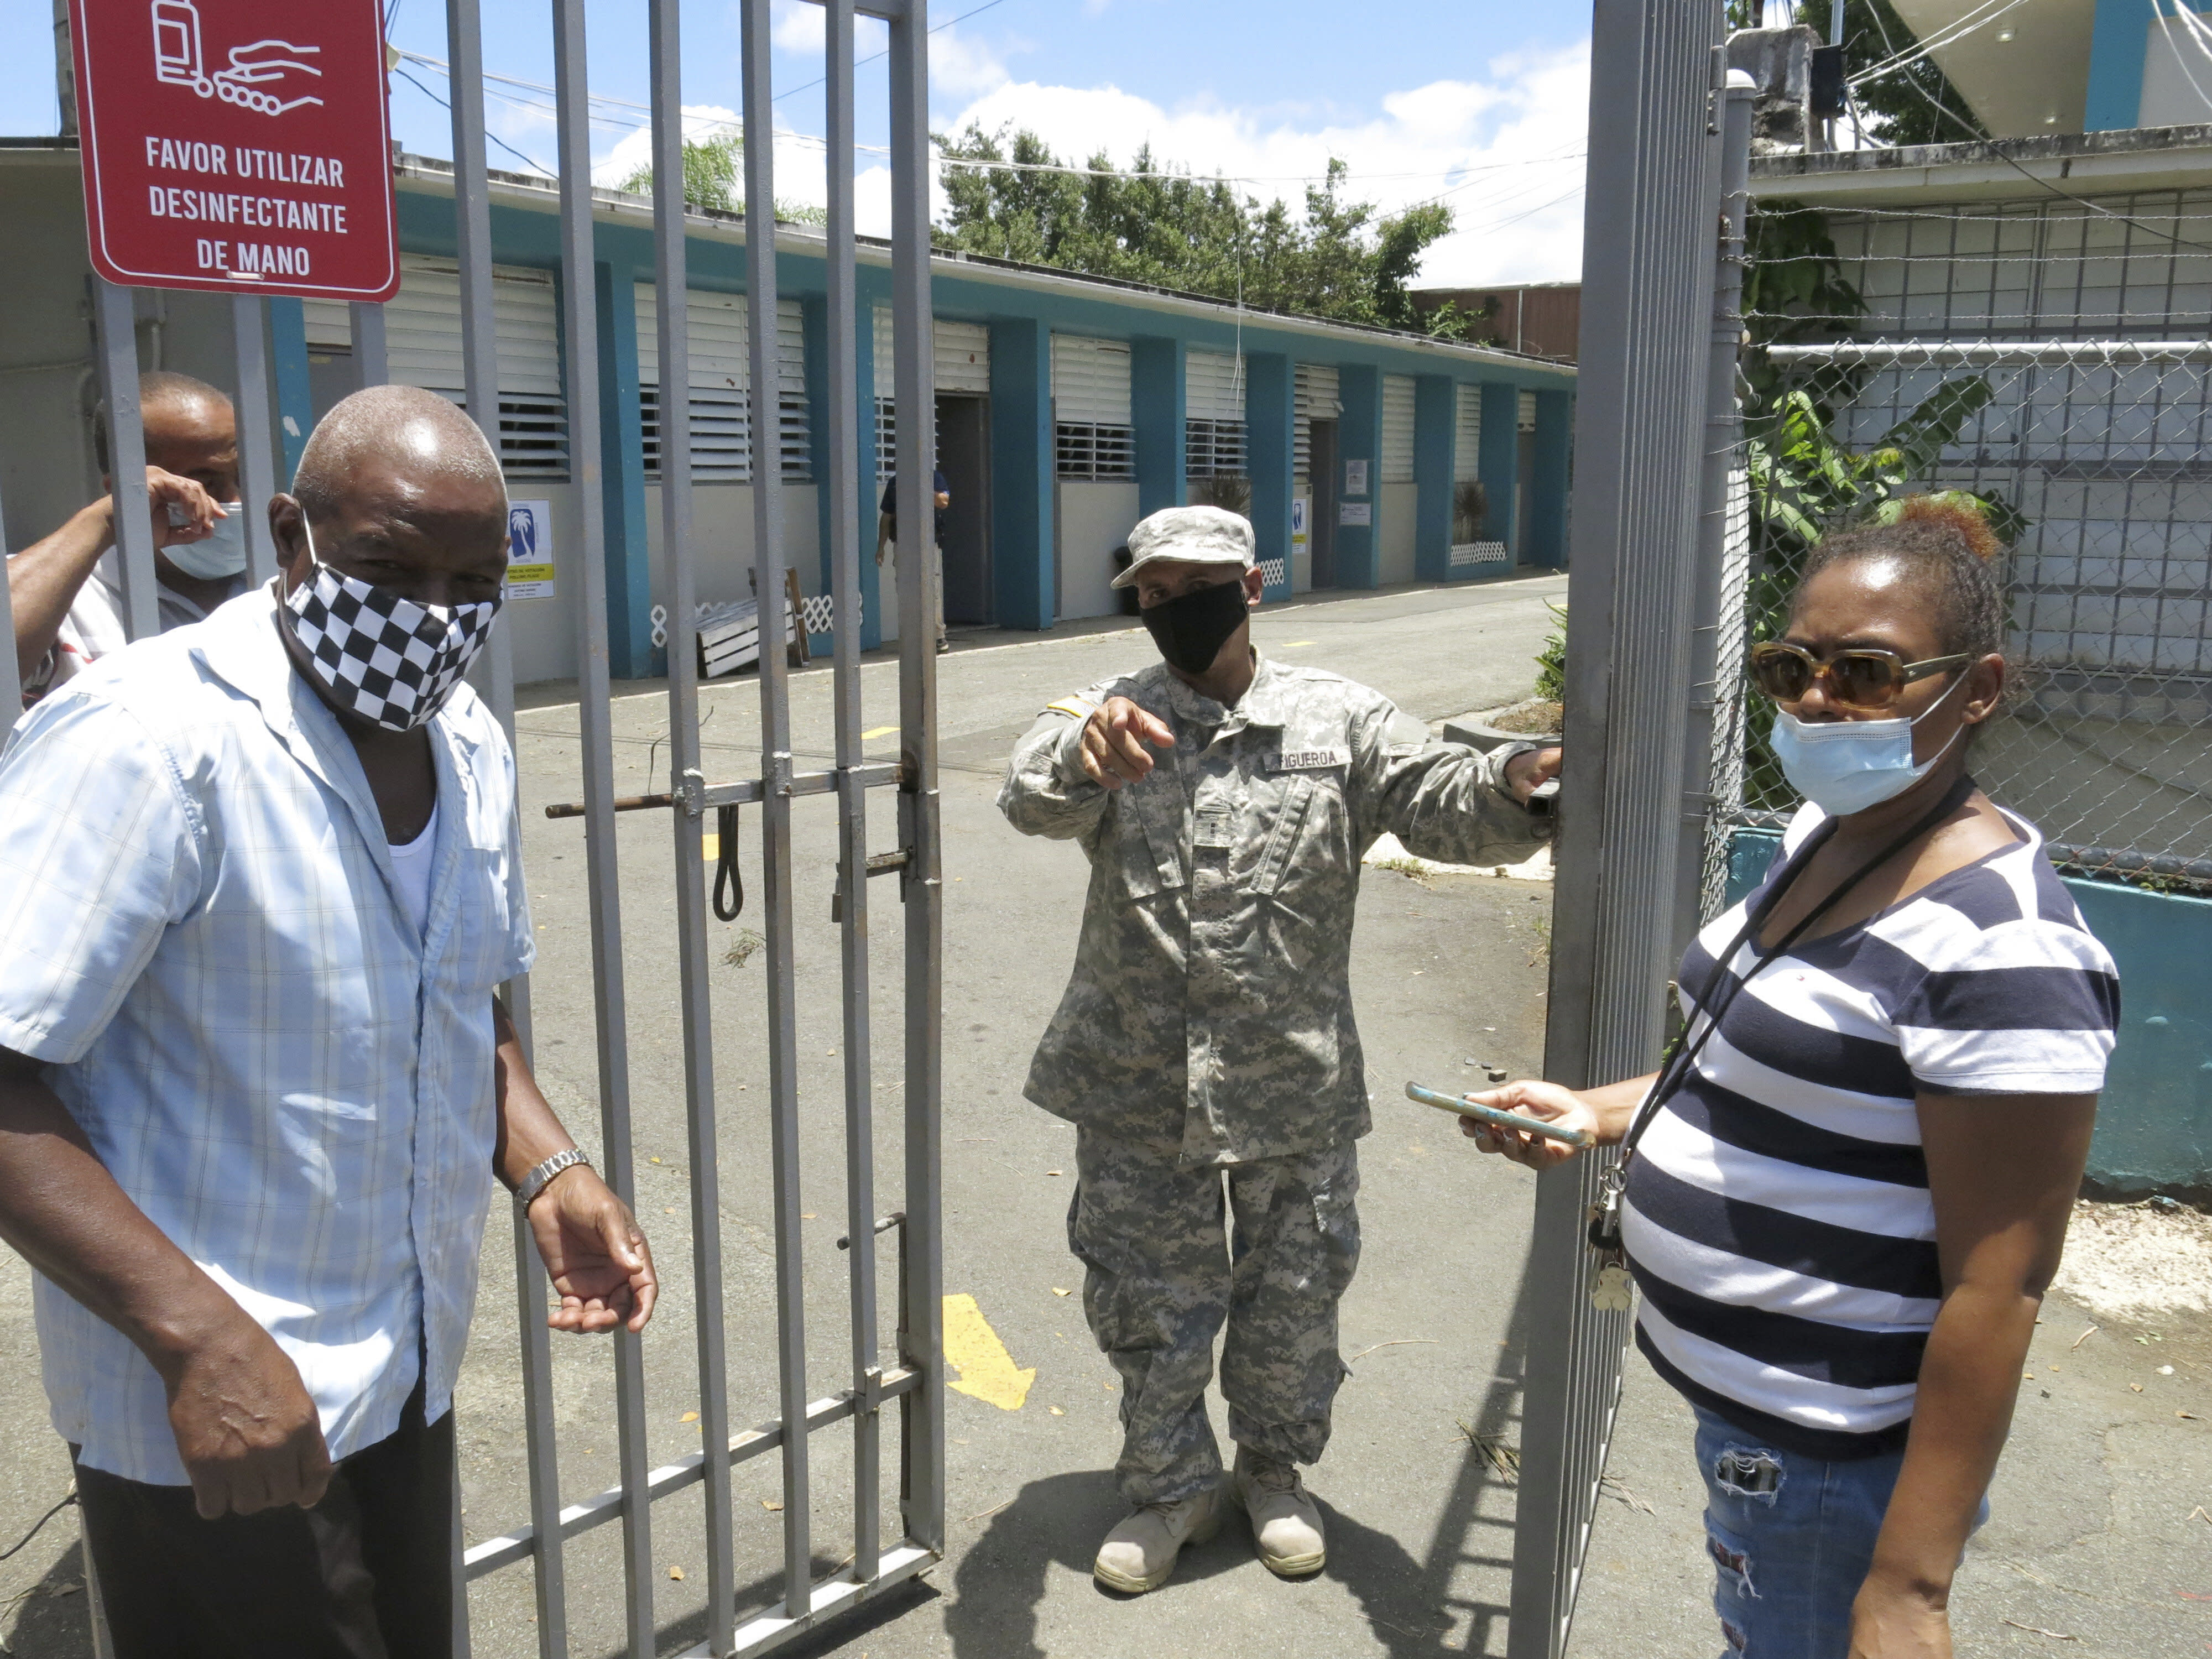 An official turns away two voters at a voting center lacking ballots in Carolina, Puerto Rico, Sunday, Aug. 9, 2020. Puerto Rico's primaries were marred on Sunday by a lack of ballots in a majority of centers across the U.S. territory, forcing frustrated voters who braved a spike in COVID-19 cases to turn around and go back home. (AP Photo/Danica Coto)